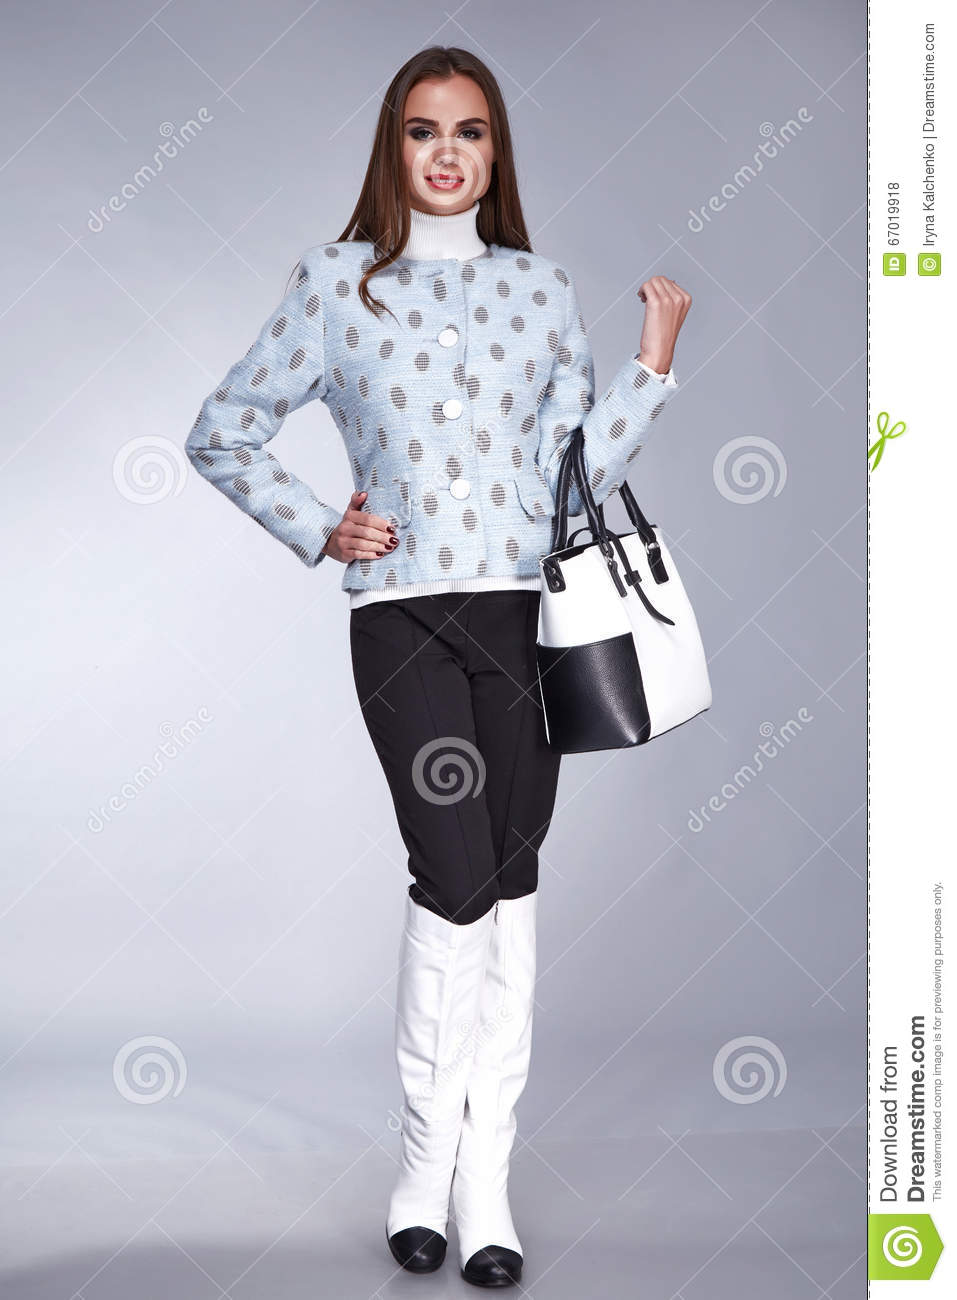 Sexy Beauty Woman Clothes Makeup Fashion Style Royalty Free Stock Image